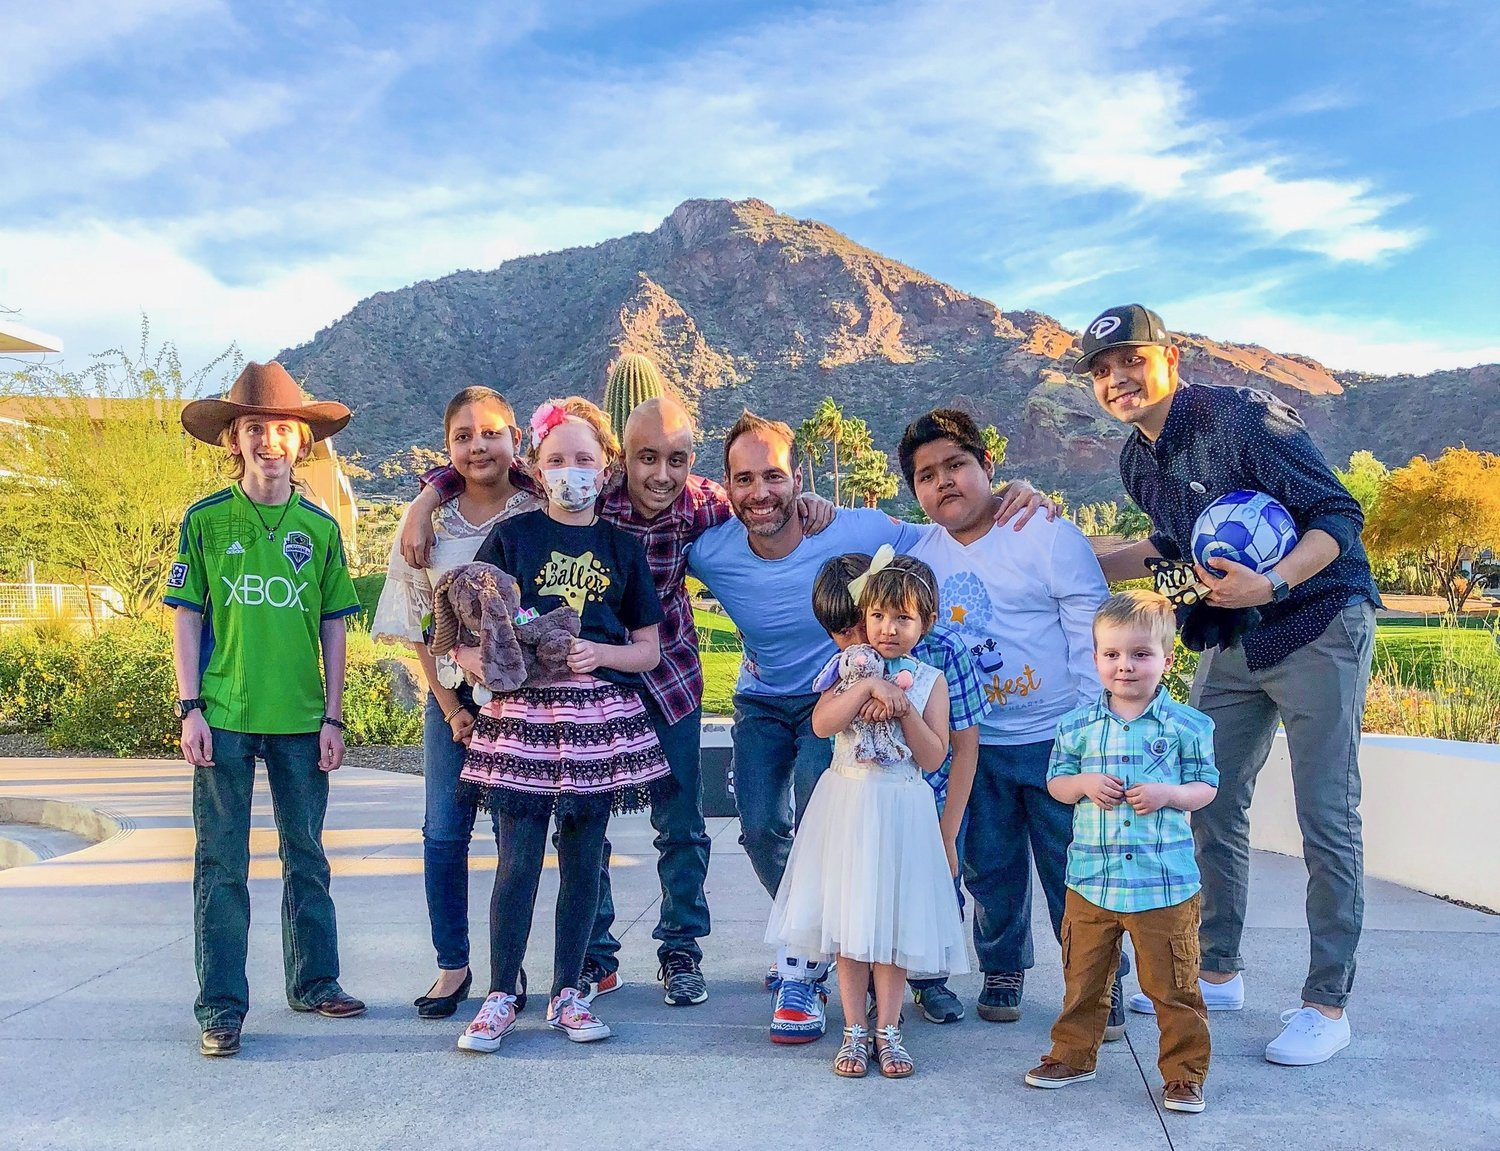 Frank and the kids at Ballsfest West in Paradise Valley, AZ March of 2018